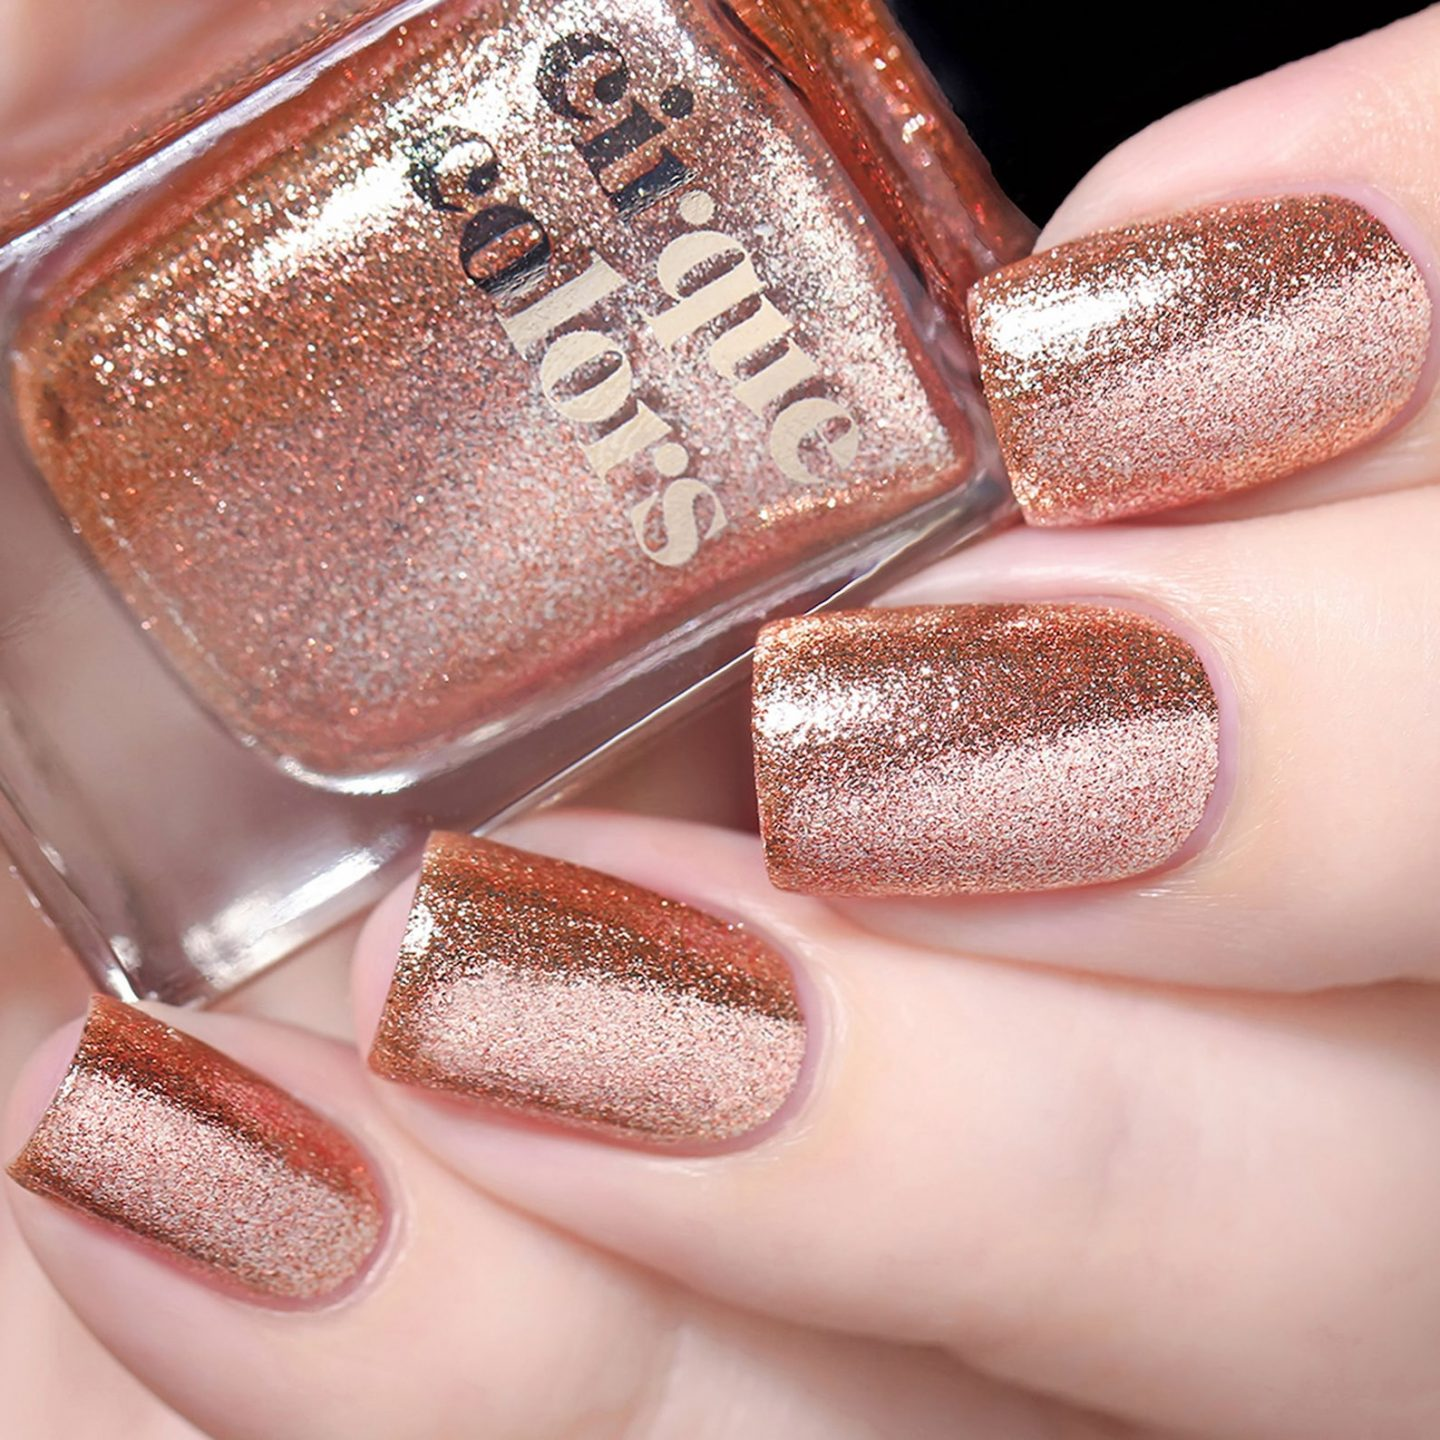 Cute short rose gold nails with glitter